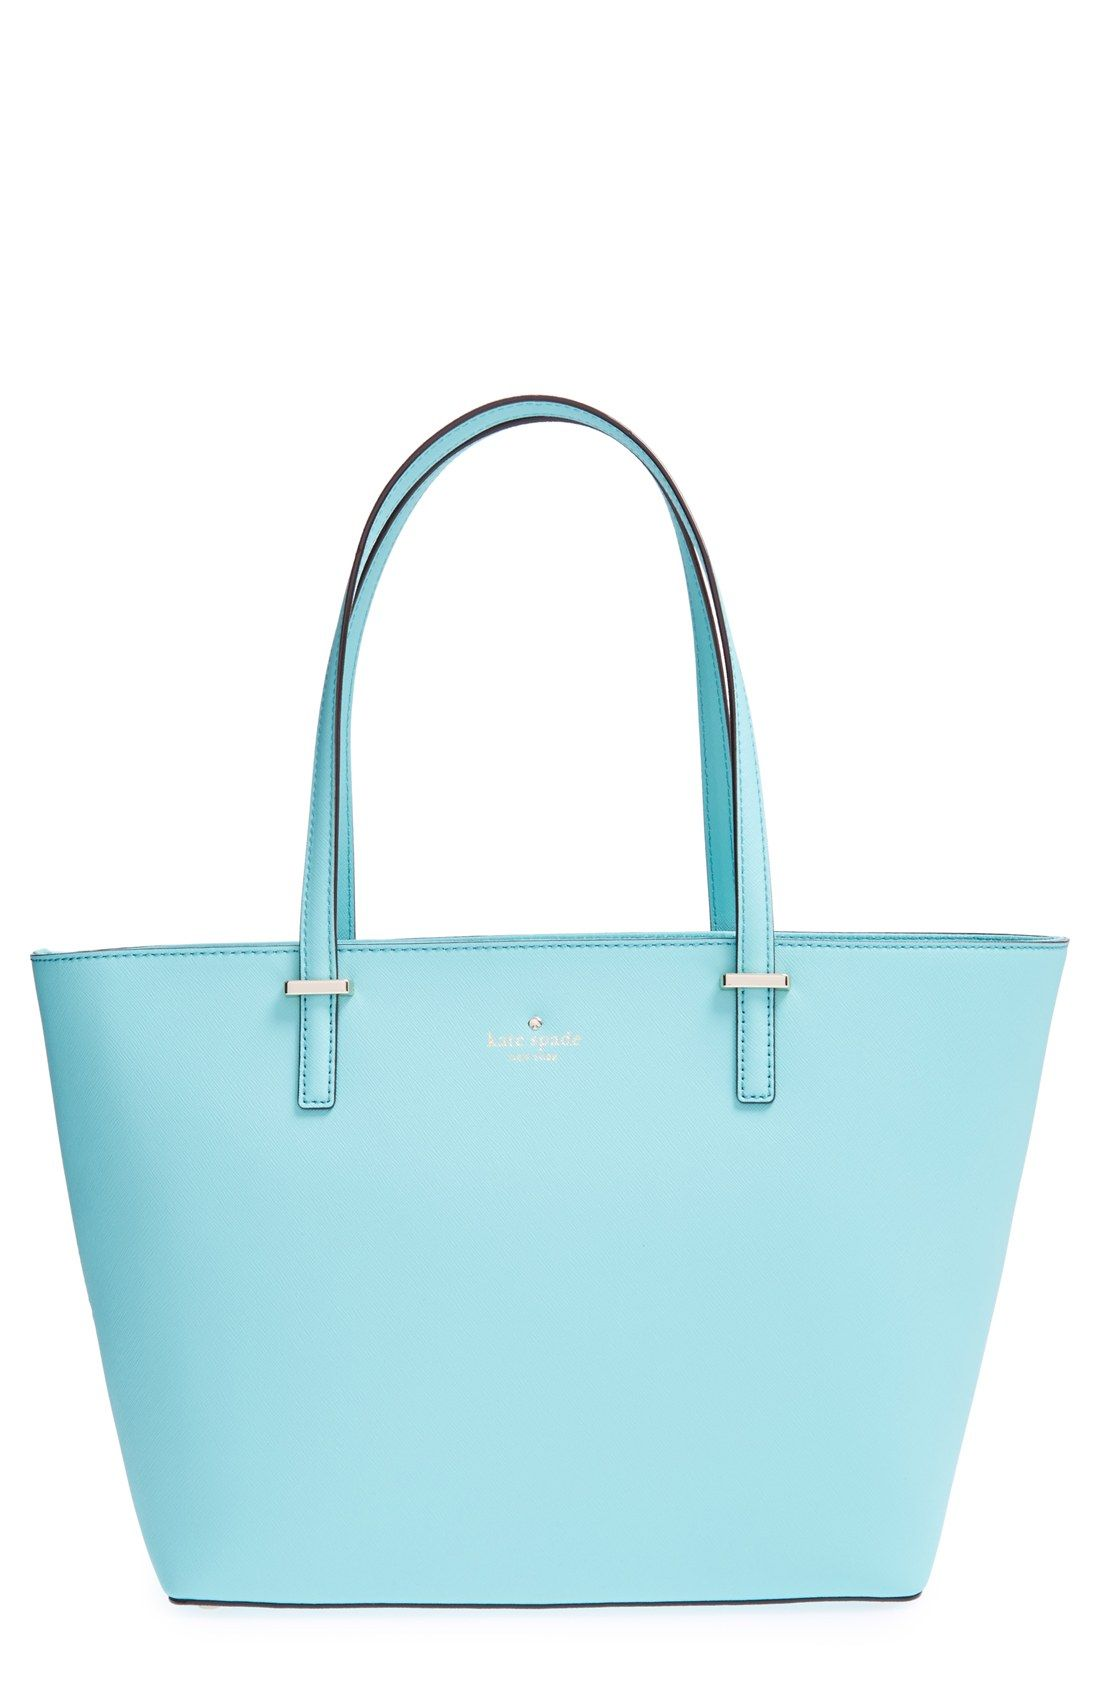 ac88e4093190 This sleek Kate Spade mint tote is perfect for a work bag! It s classy